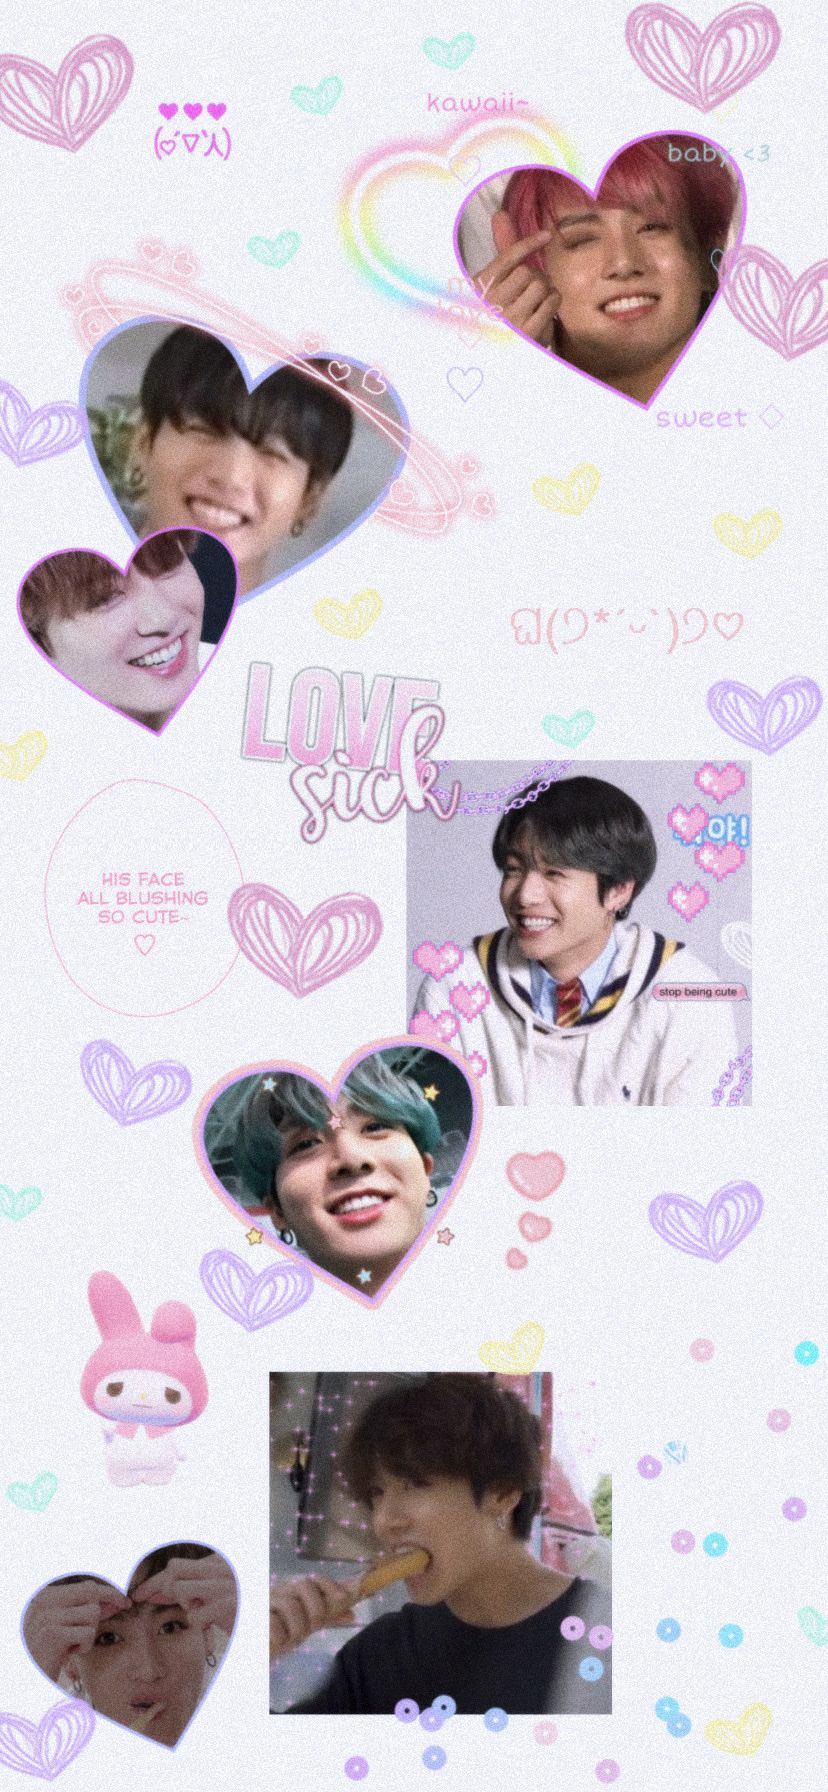 Bts Wallpapers Jungkook X Mymelody Wallpapers Iphone Wallpaper Bts Bts Wallpaper Bts Aesthetic Pictures